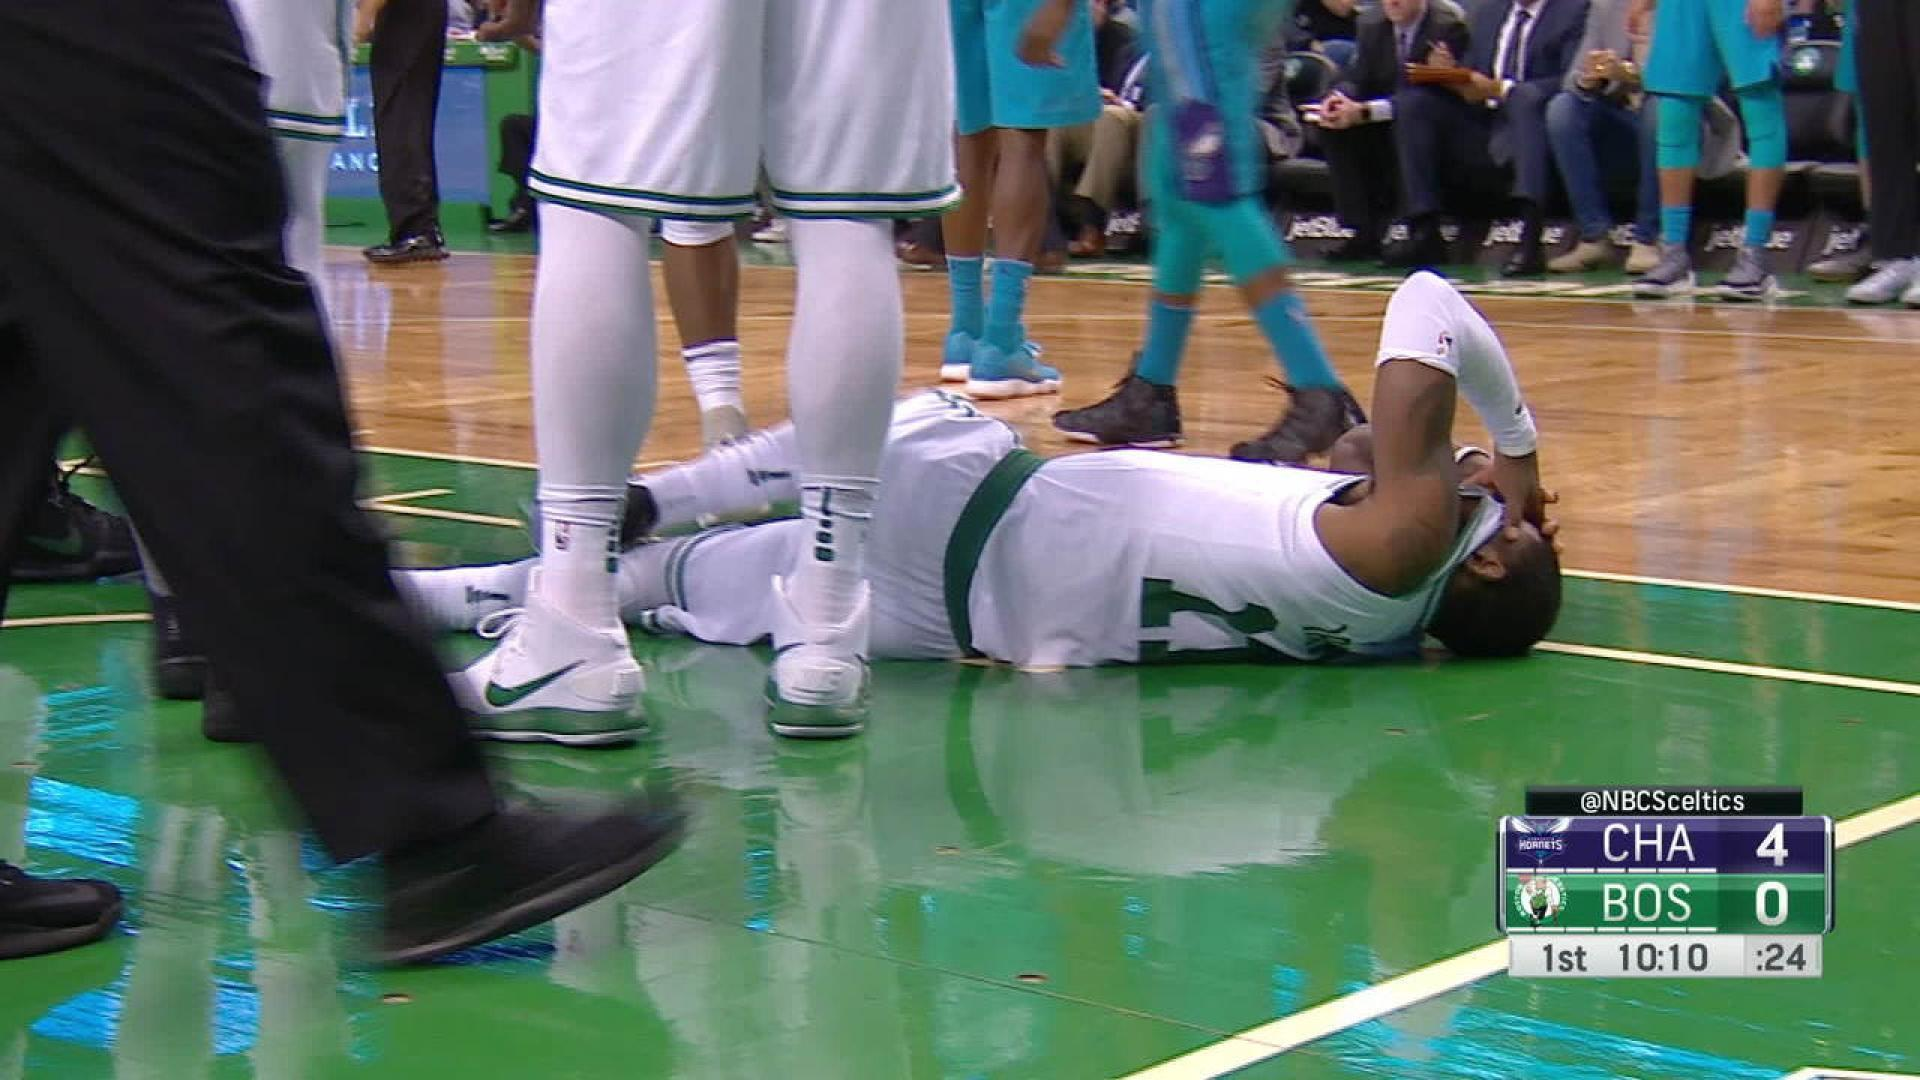 1:13Play     Kyrie Irving takes an inadvertent shot to the face by Aron Baynes and has to be helped to the locker room early in the first quarter